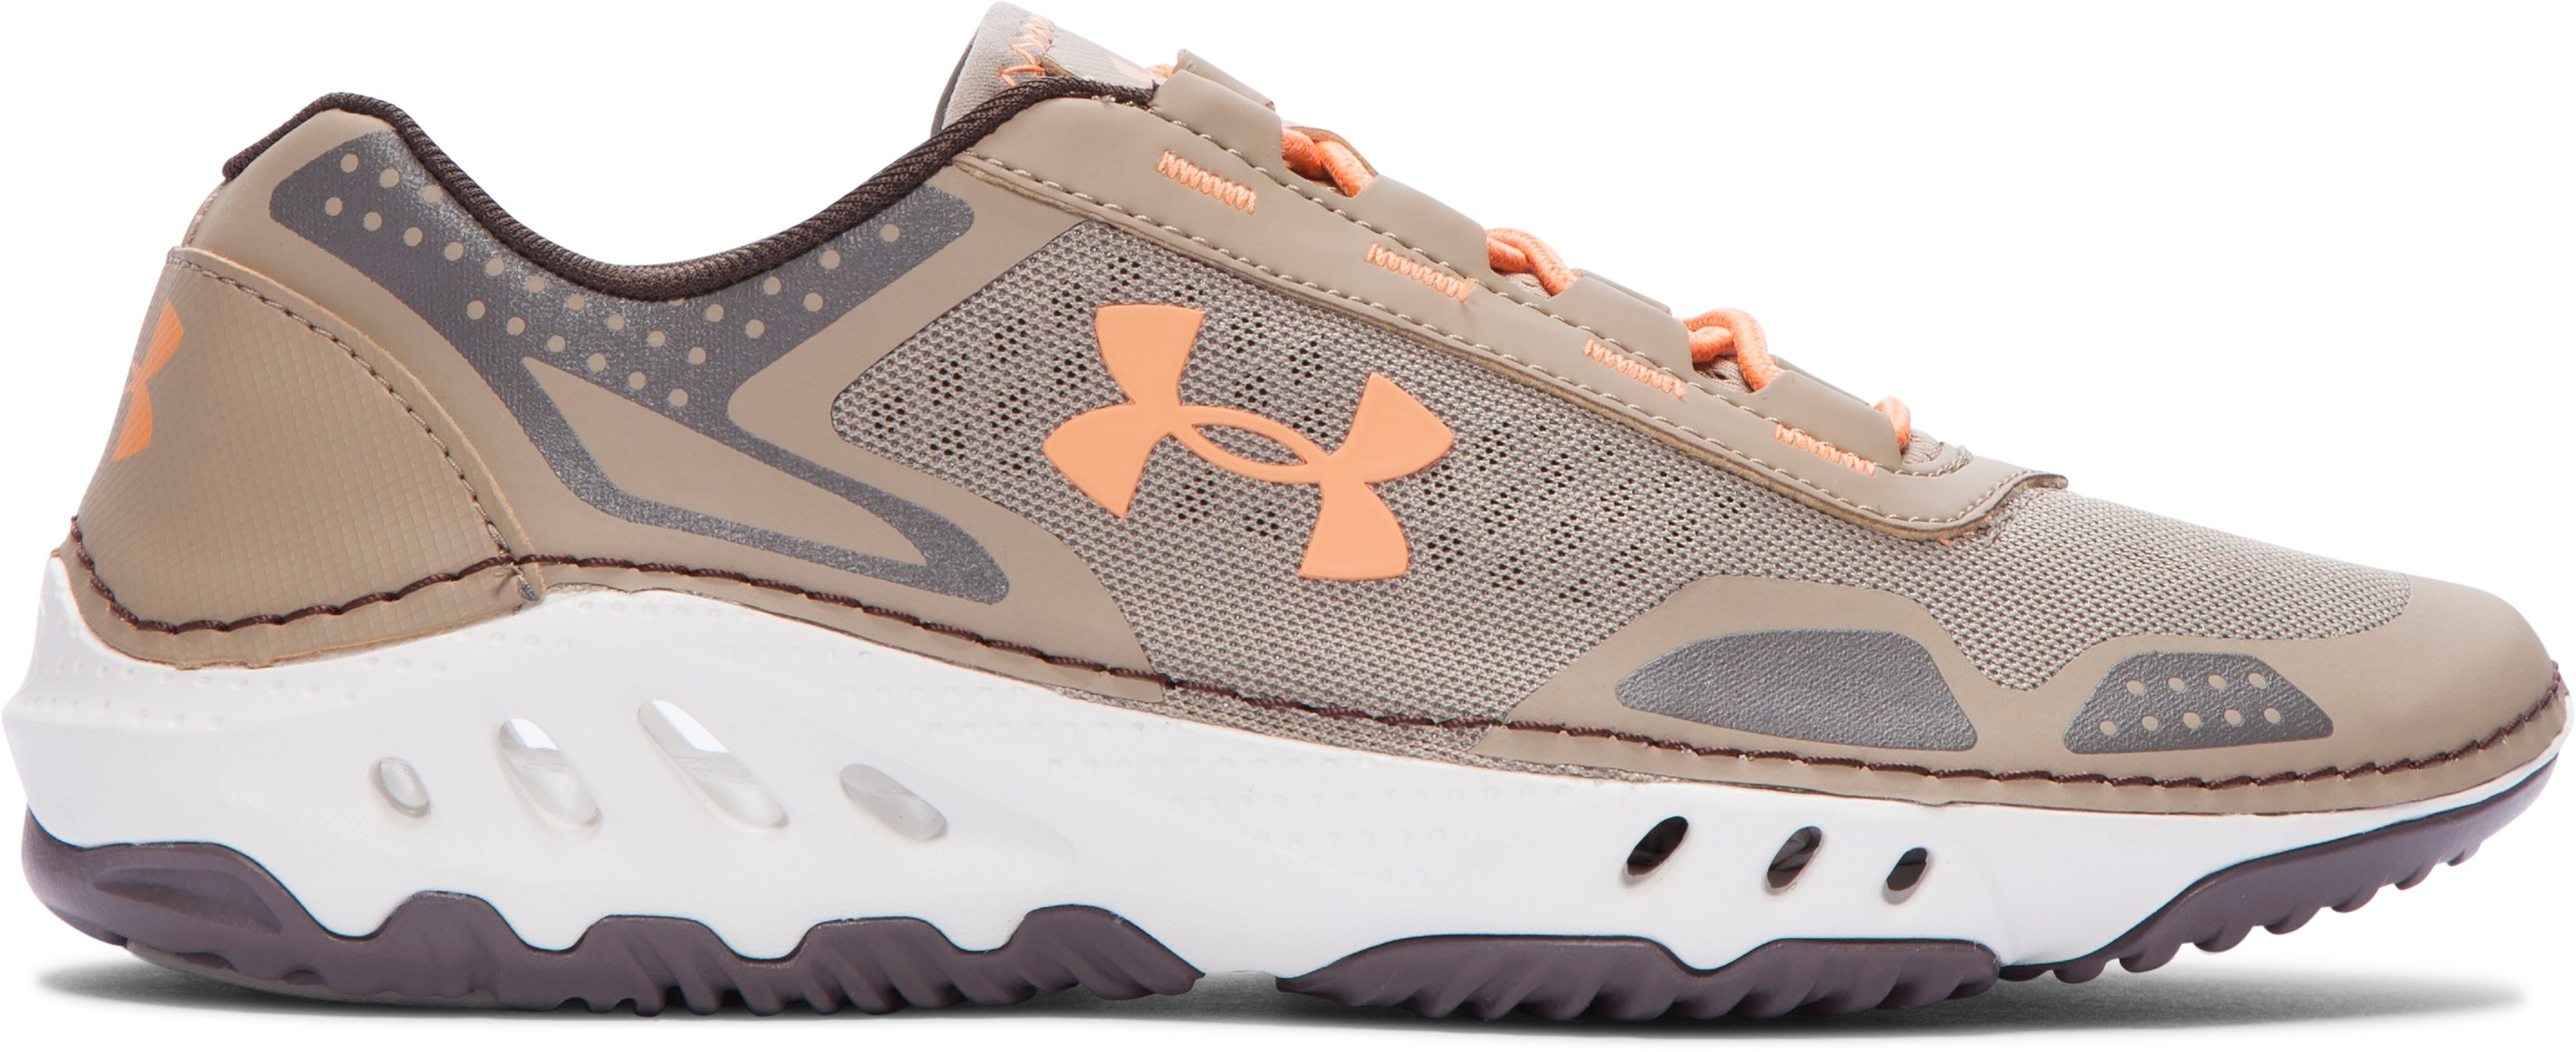 Women's UA Drainster Shoes, Canvas